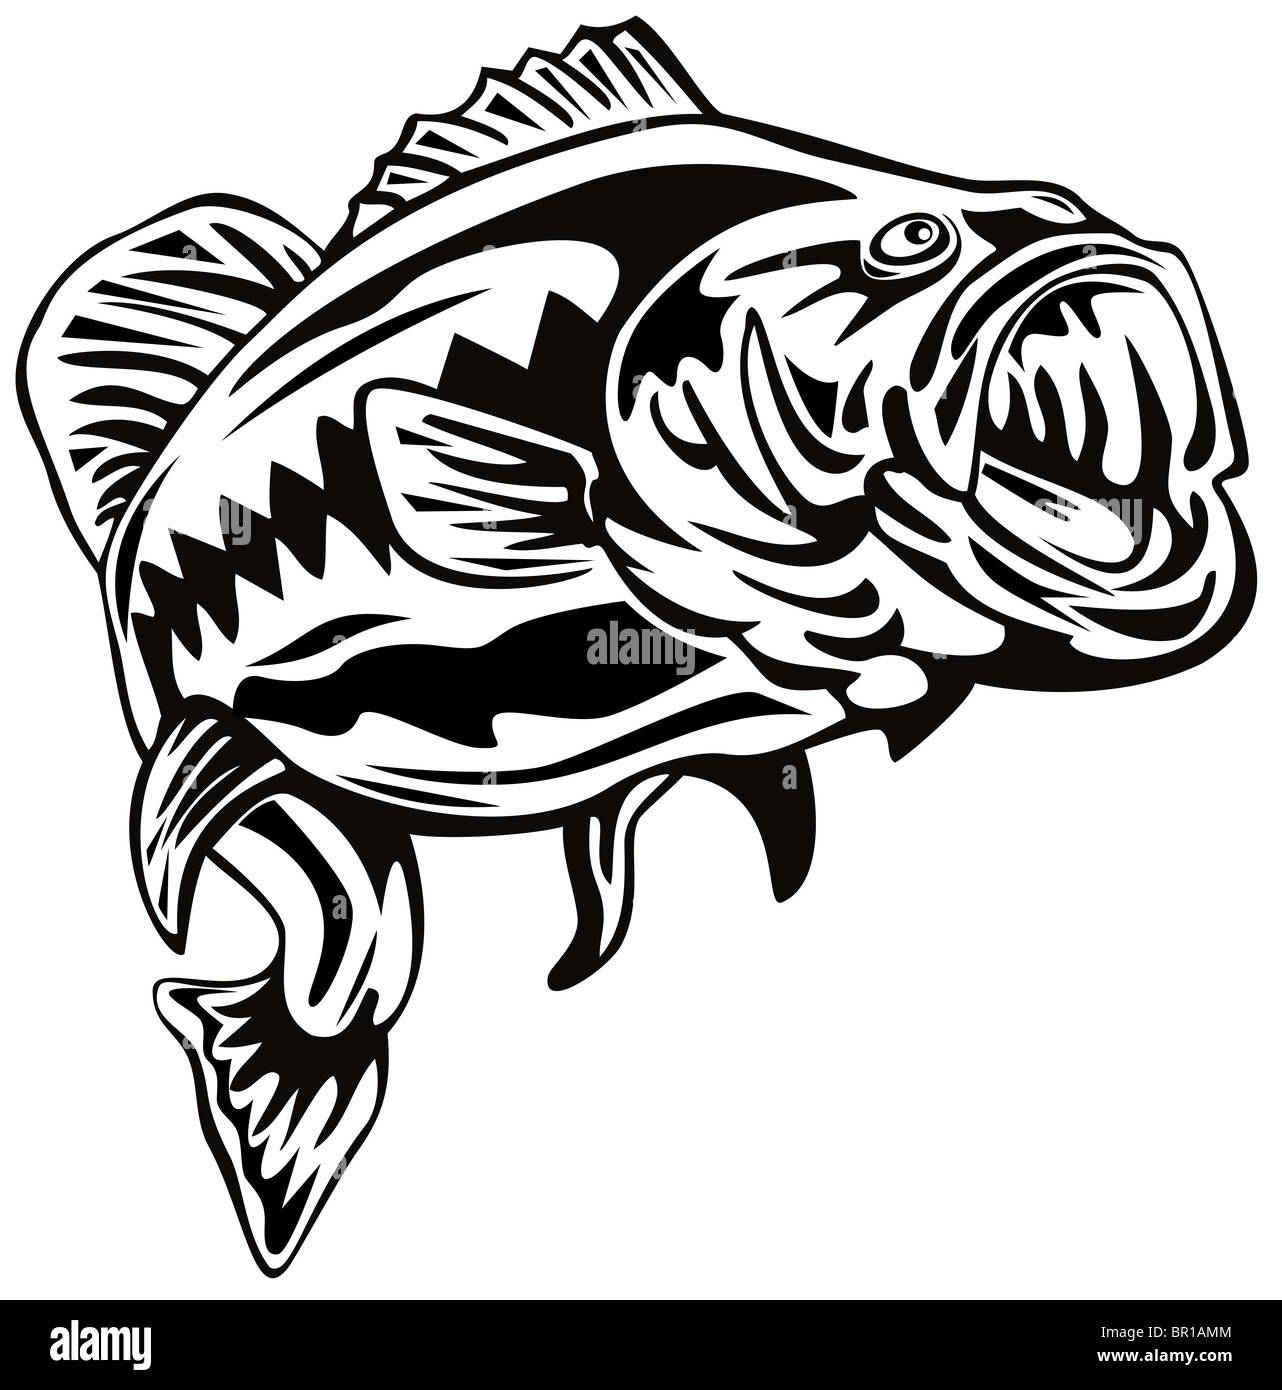 Retro Woodcut Style Illustration Of A Largemouth Bass Fish Jumping On Isolated White Background